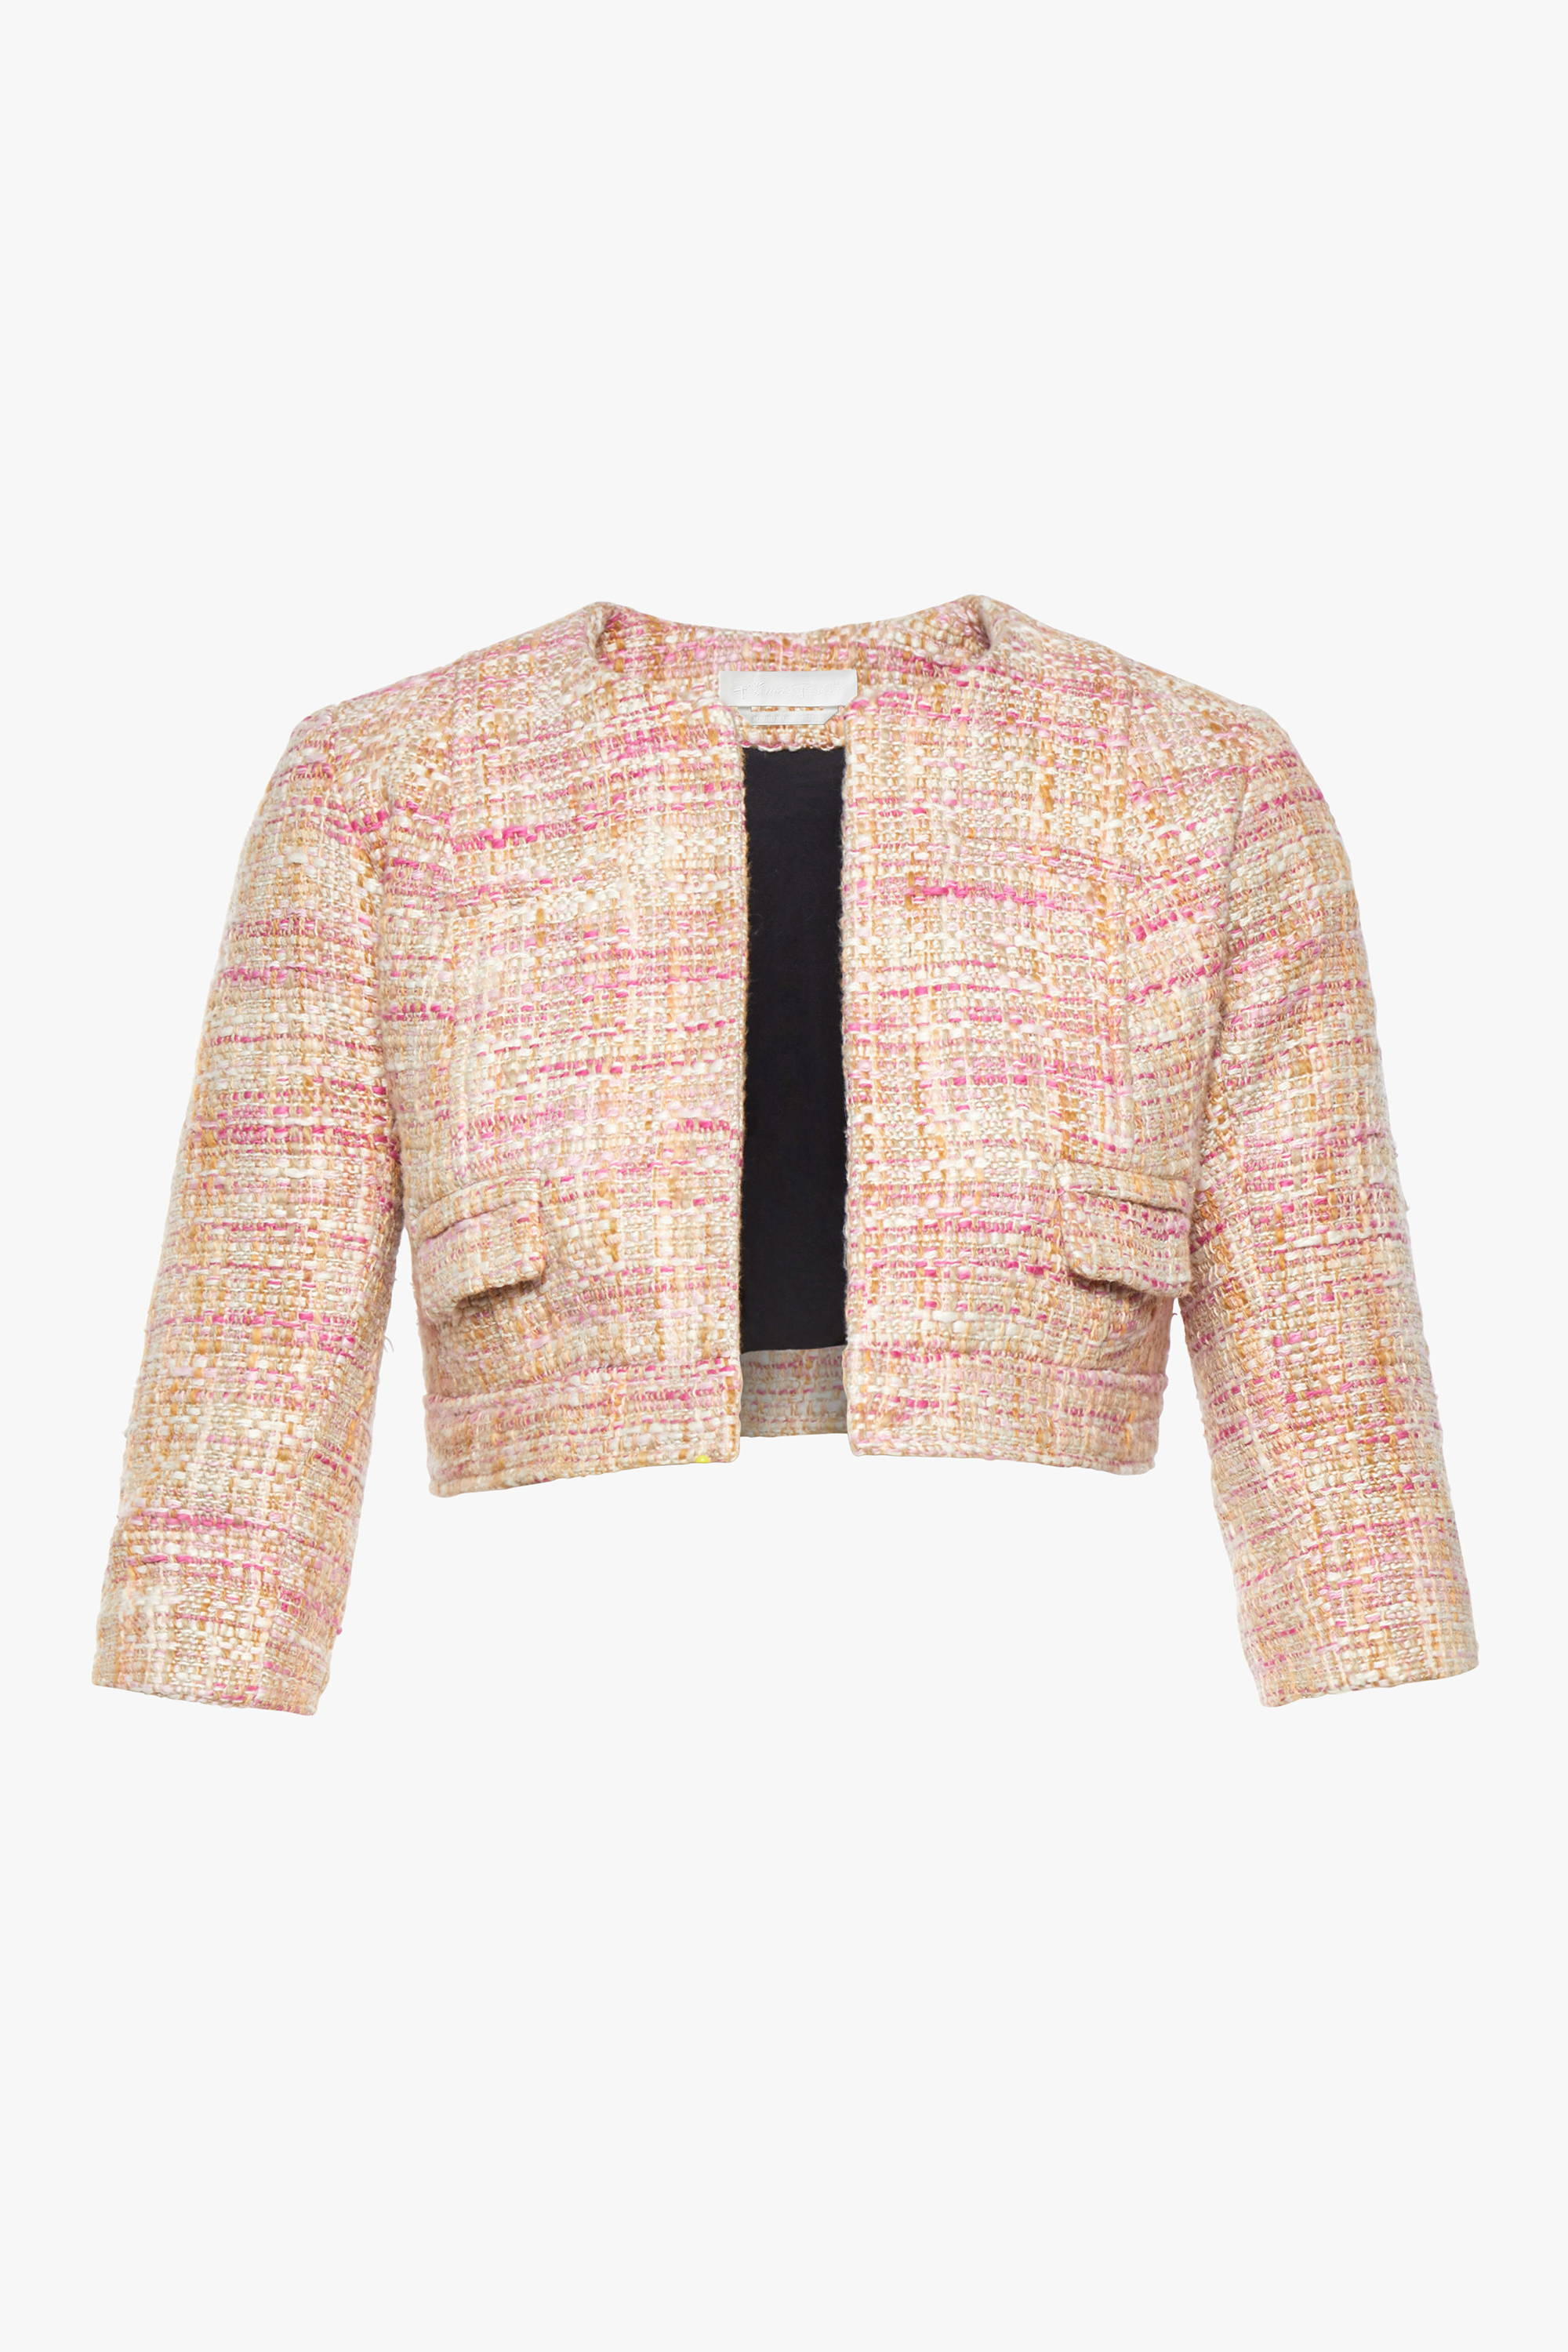 The maternity friendly Beverly jacket in pink boucle